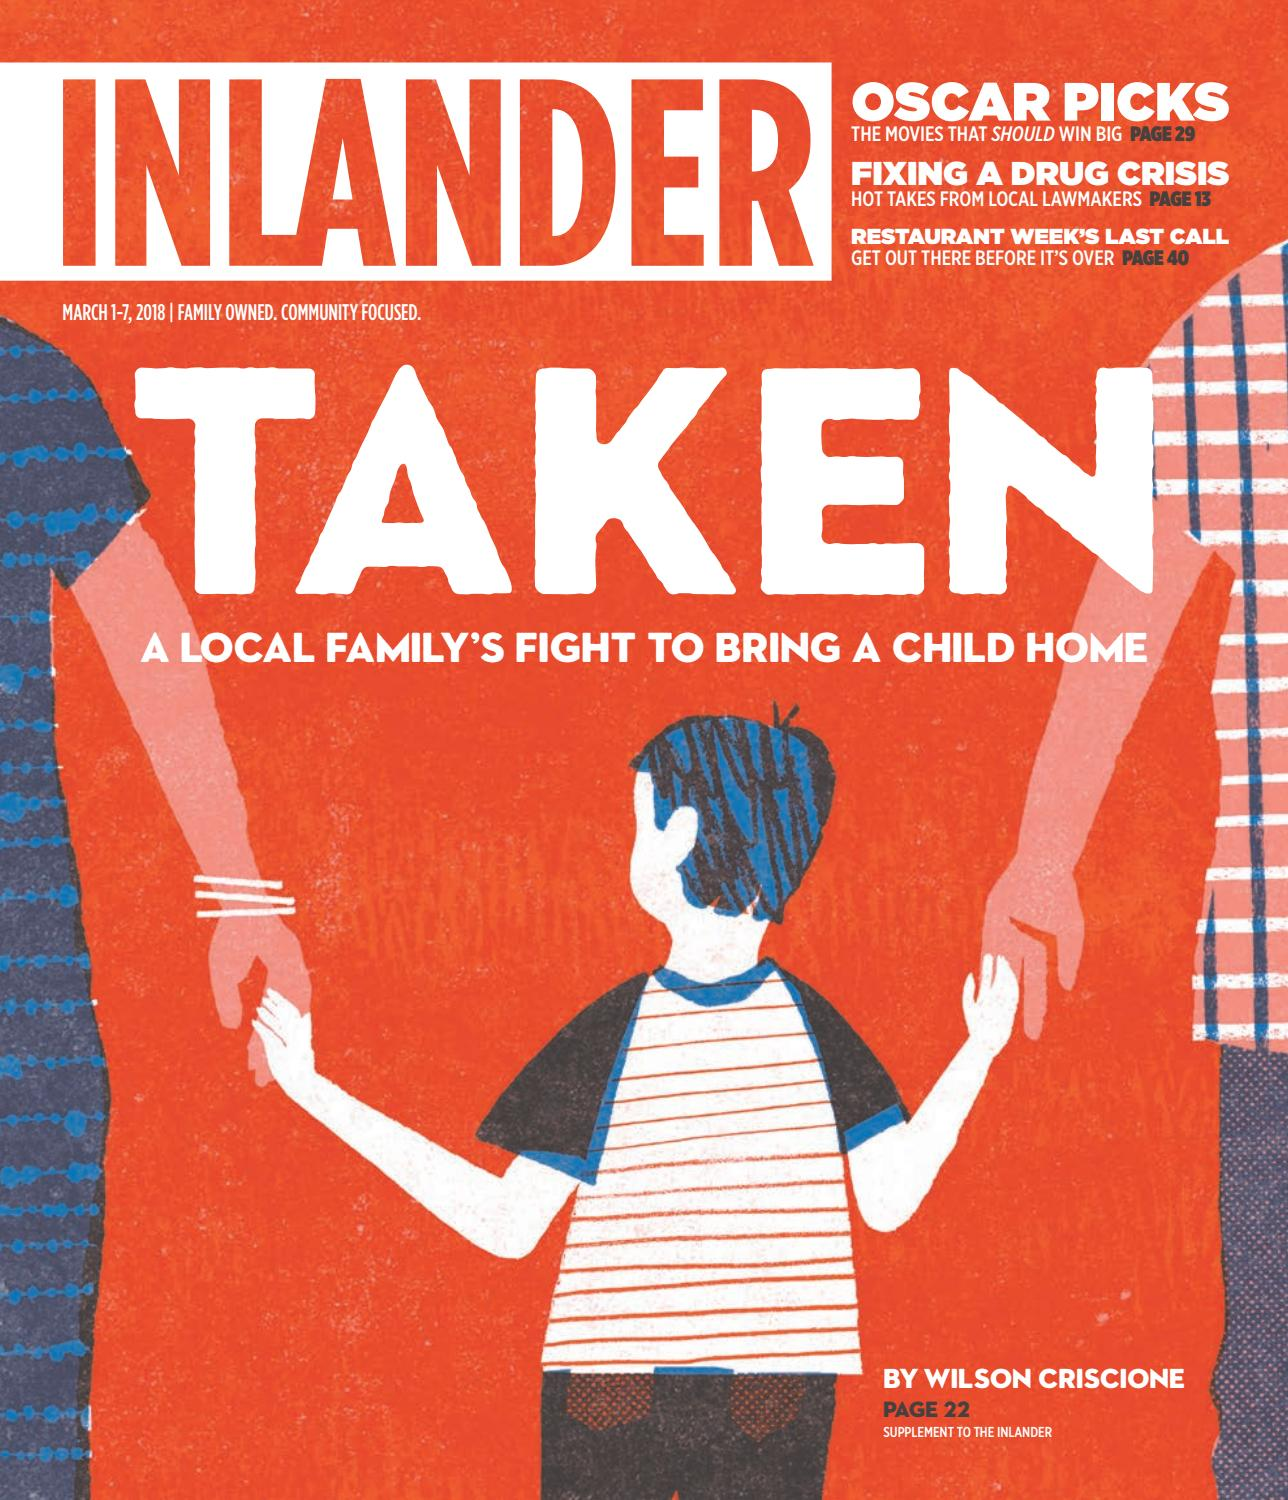 c1819a0d4d769a Inlander 03 01 2018 by The Inlander - issuu